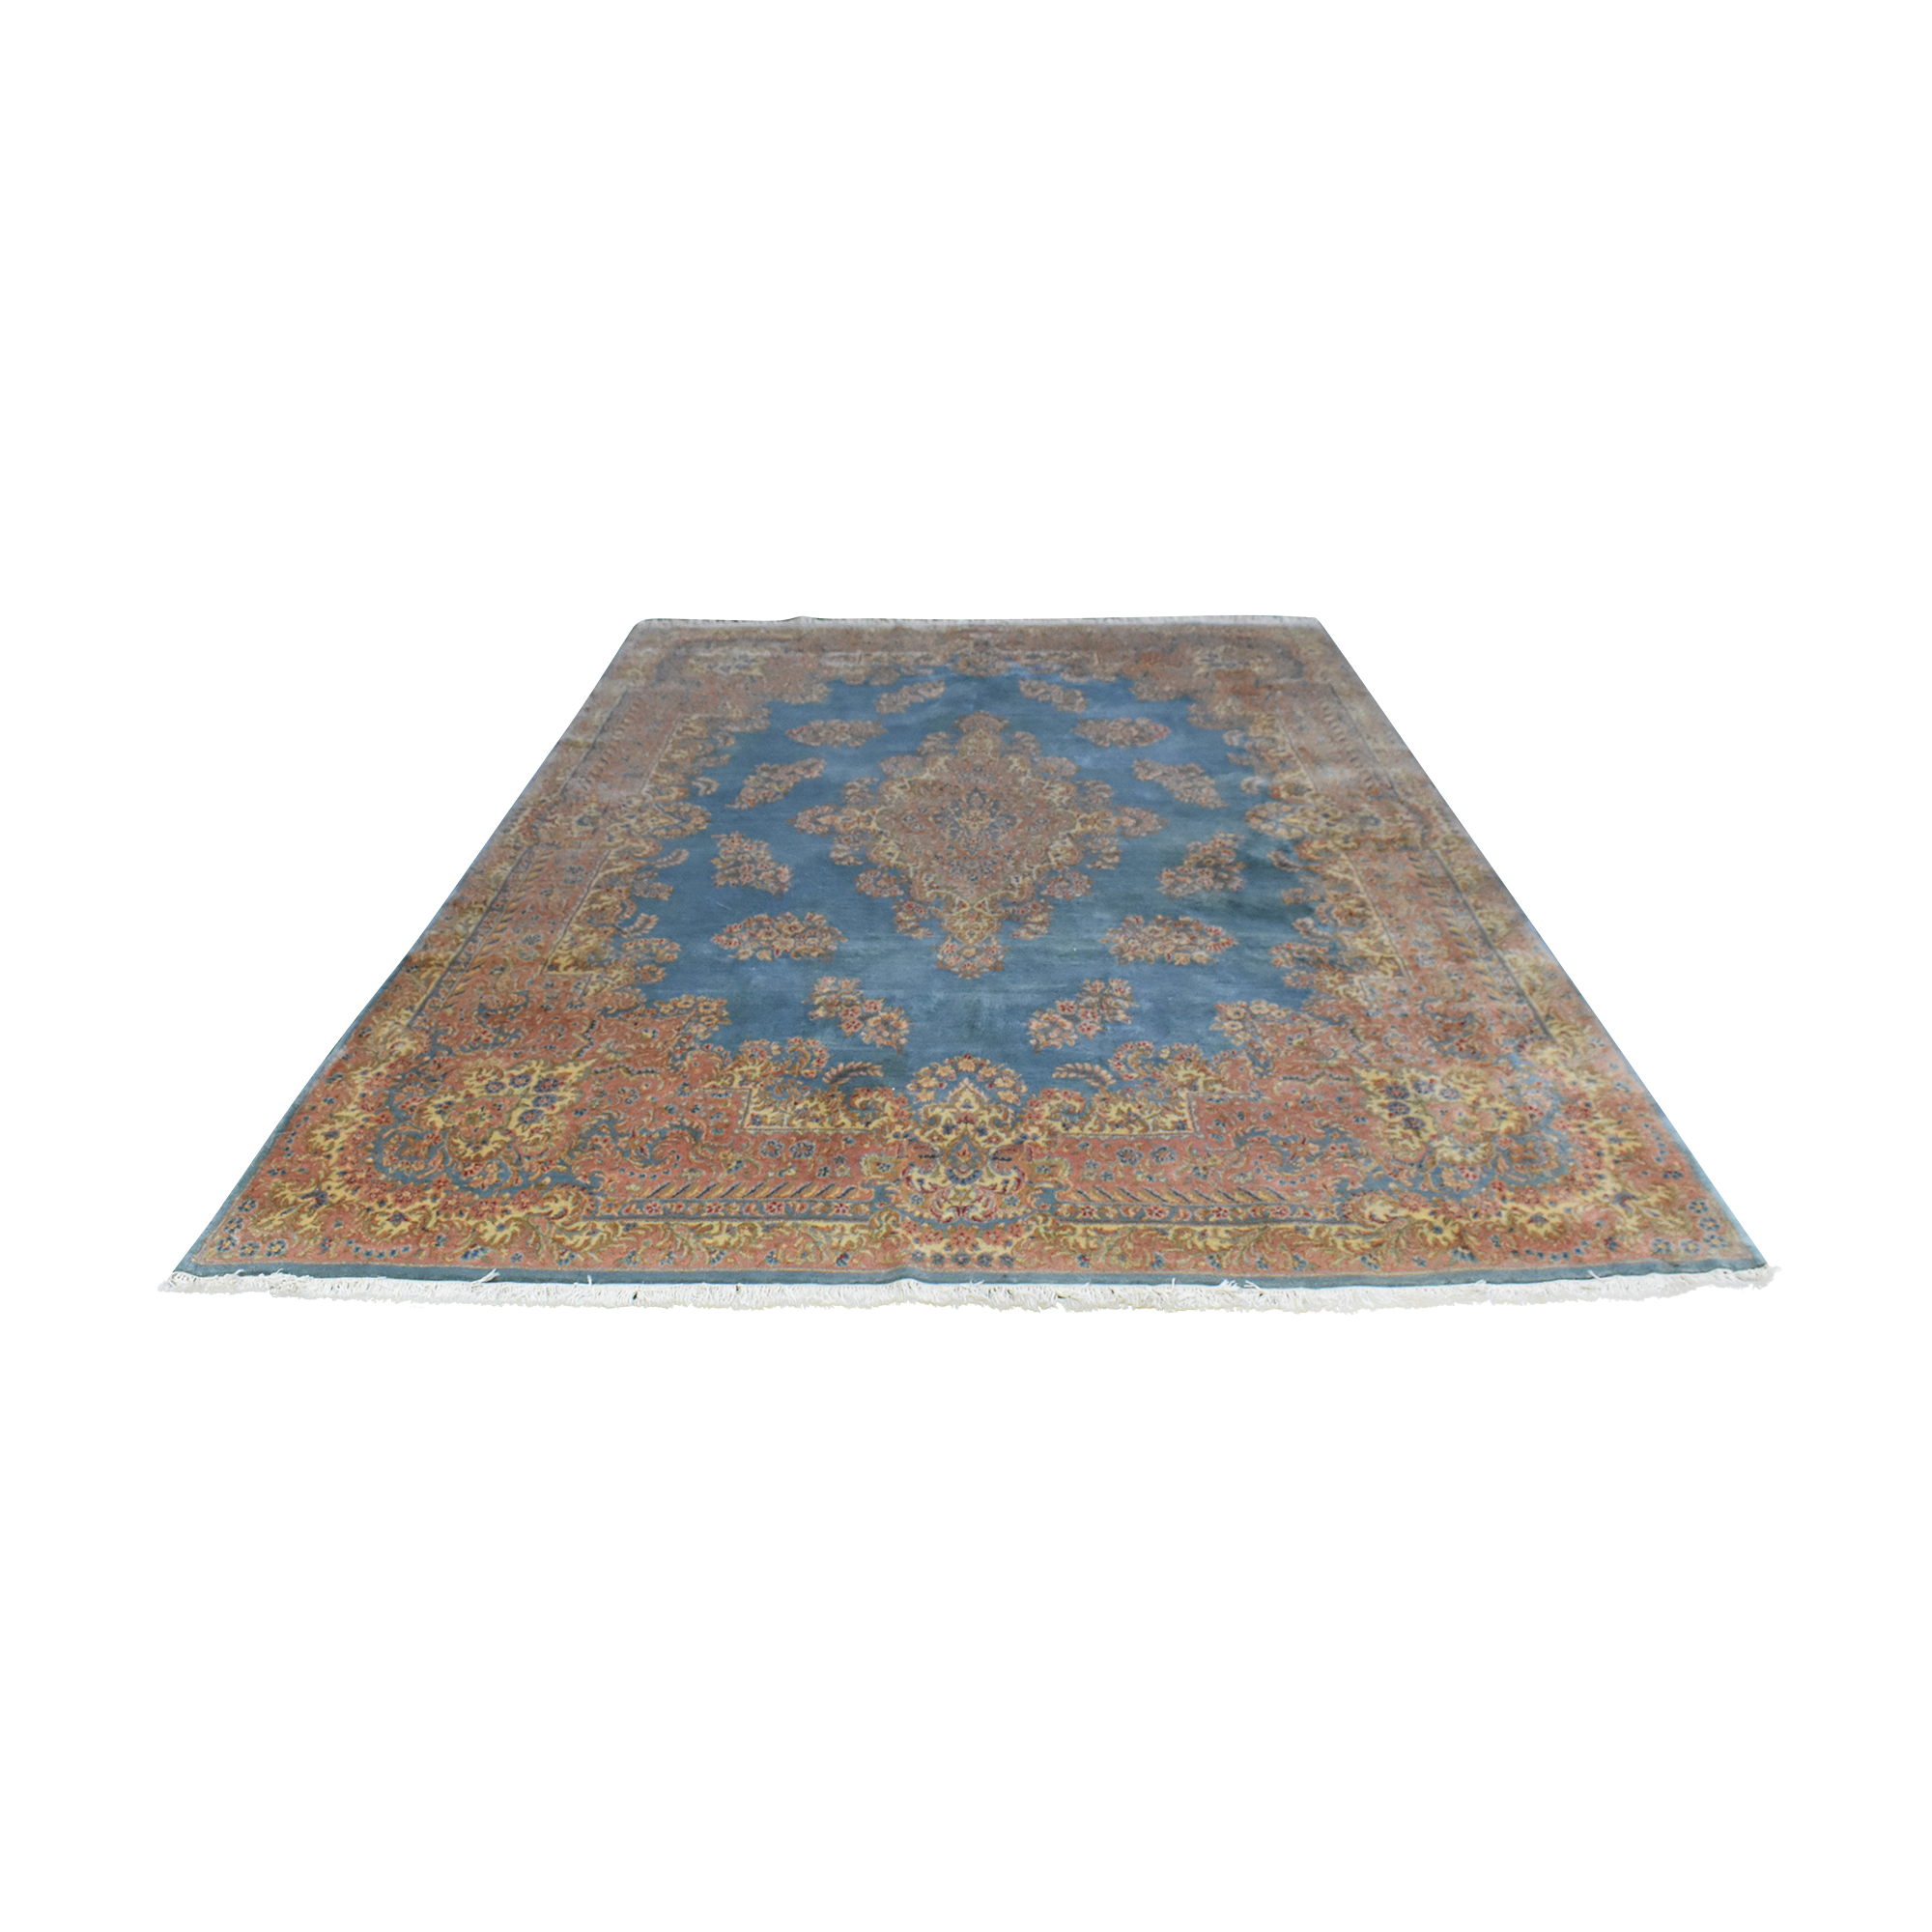 Vintage Handmade Persian Wool Carpet ct